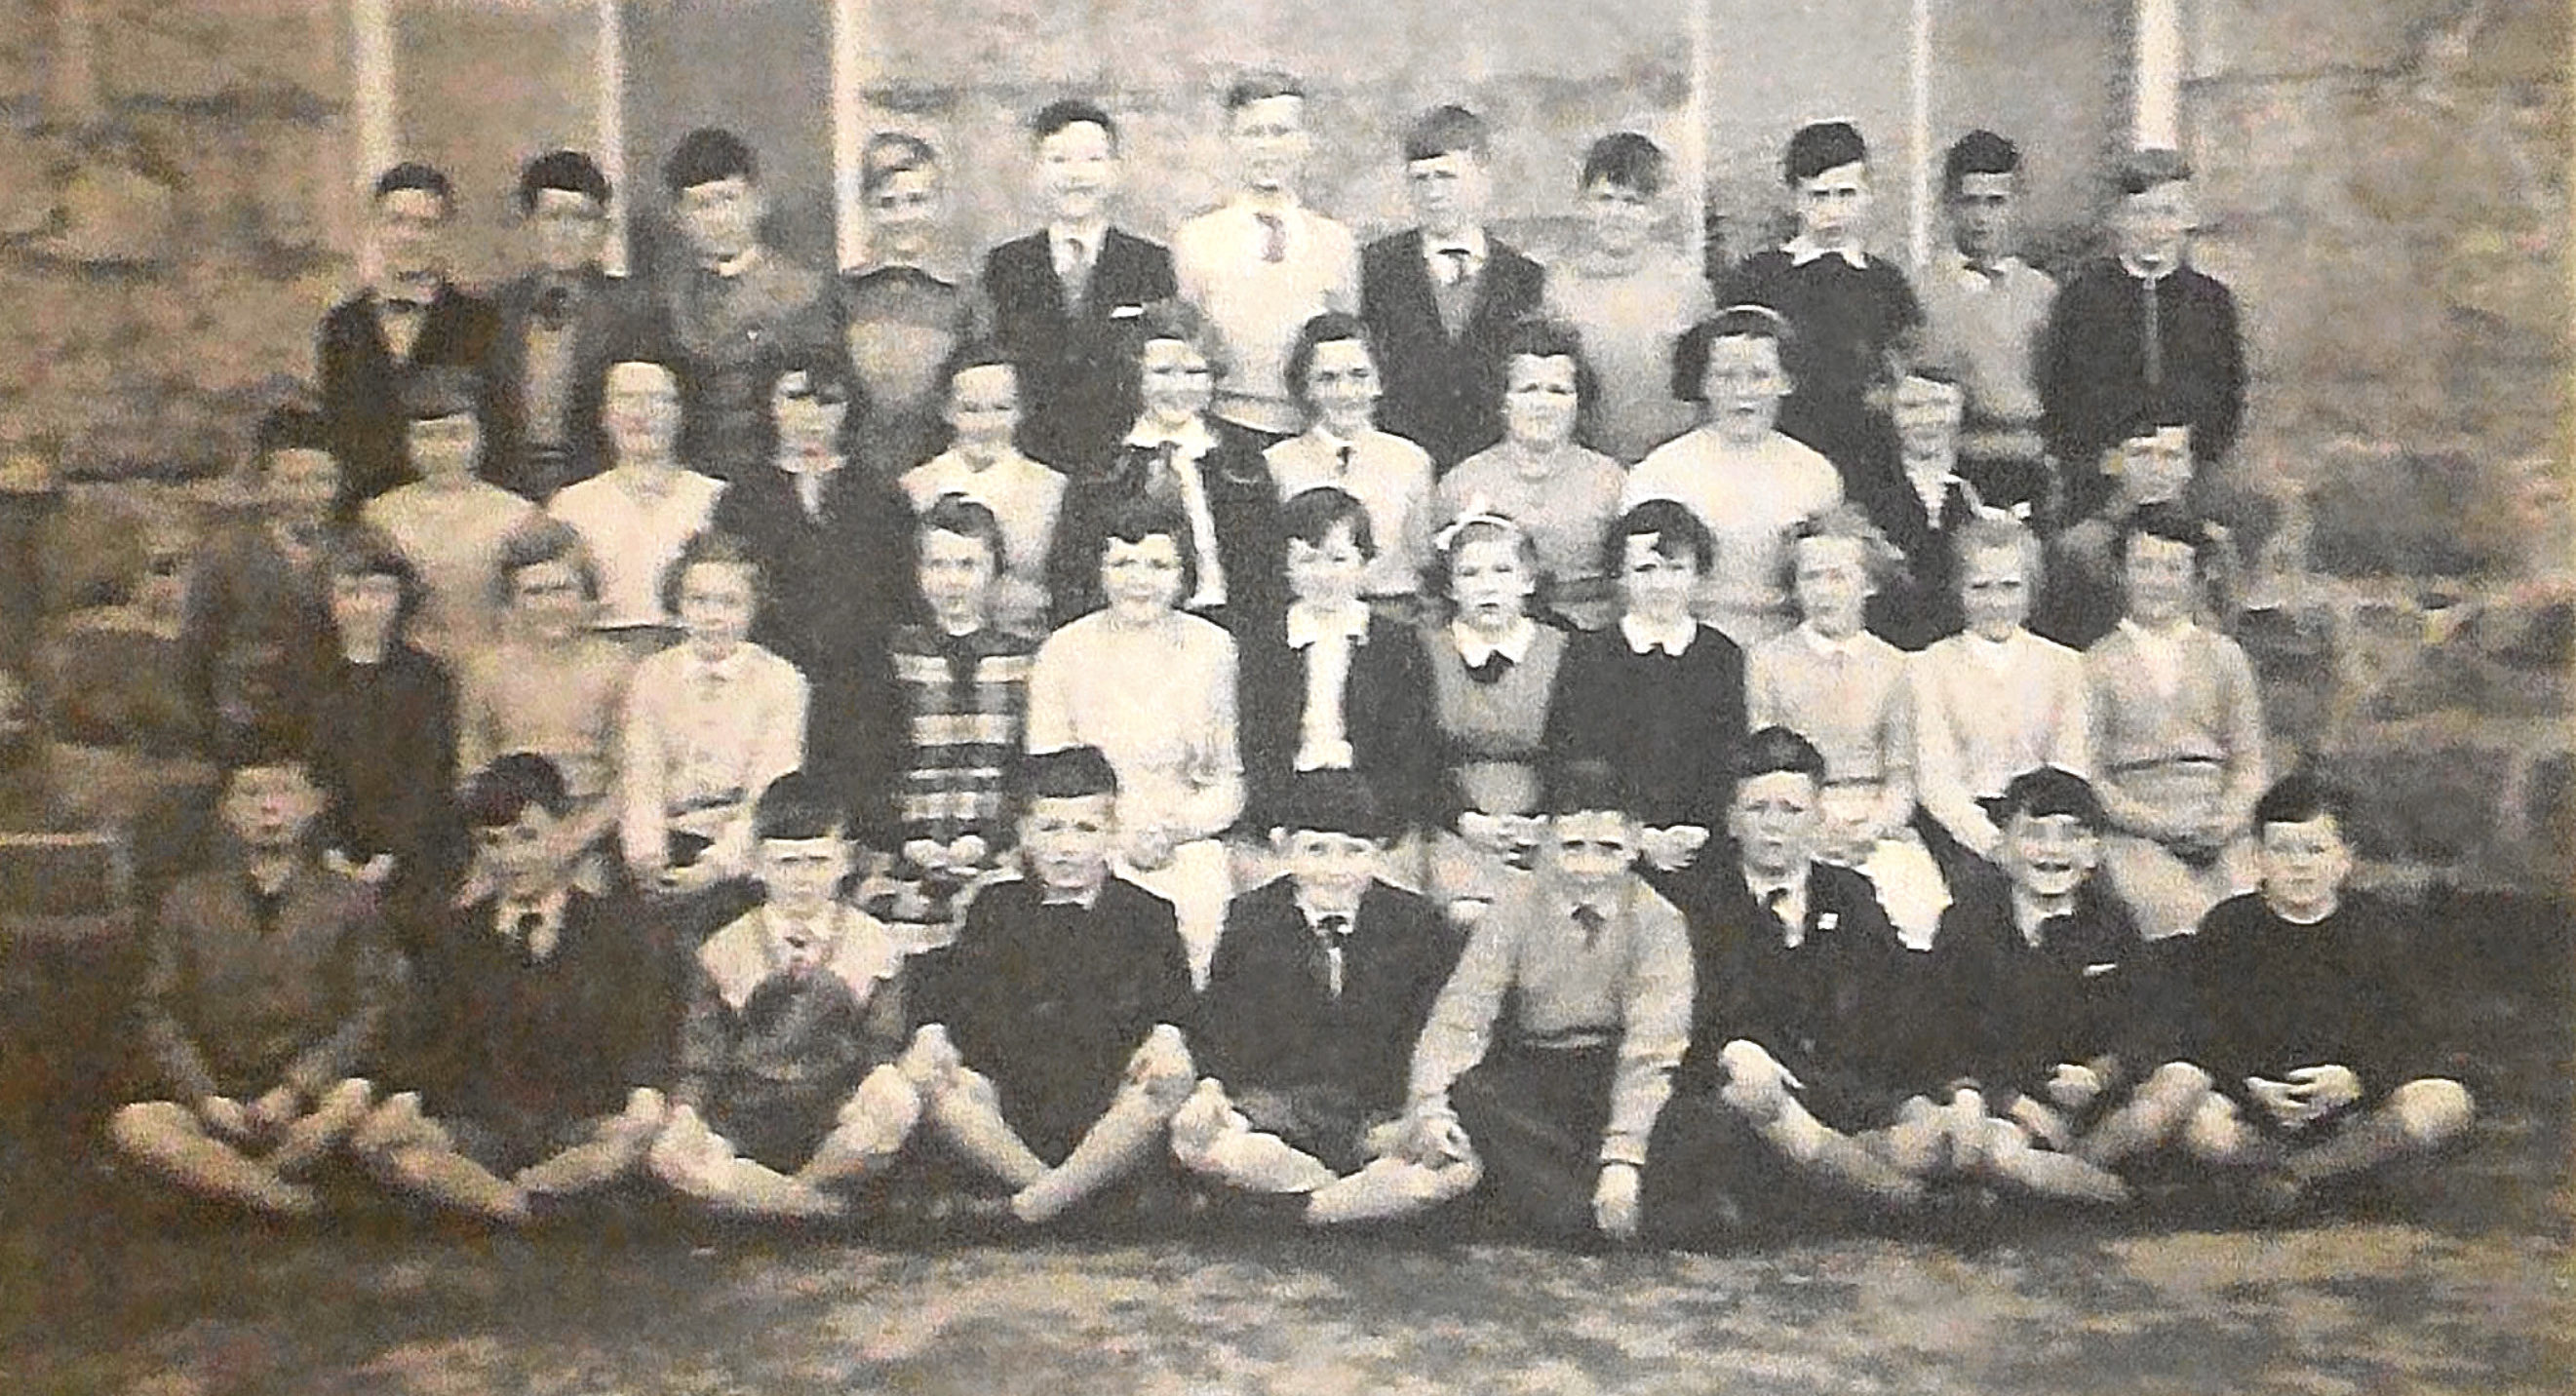 The class of 1959